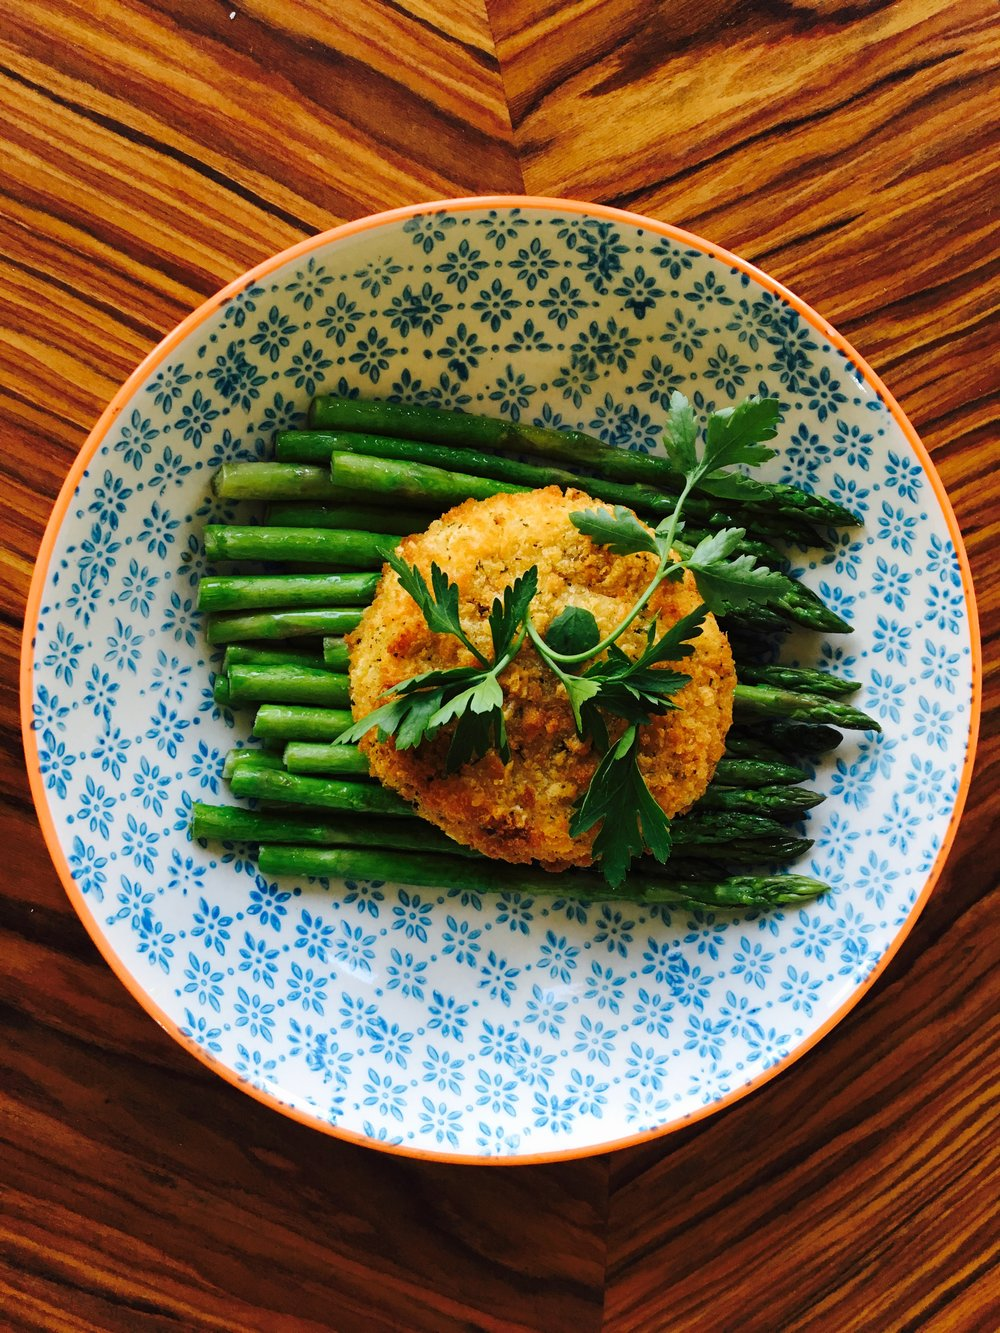 Salmon fishcakes with buttery asparagus - my own concoction, albeit the fishcake is store bought. I'm sure it's better to make your own but this is so quick! Bung it in the oven and all you need to do then is fry up the asparagus. Boom! Only drawback is smelly wee from the asparagus but it's good enough to put up with two or three smelly wees!